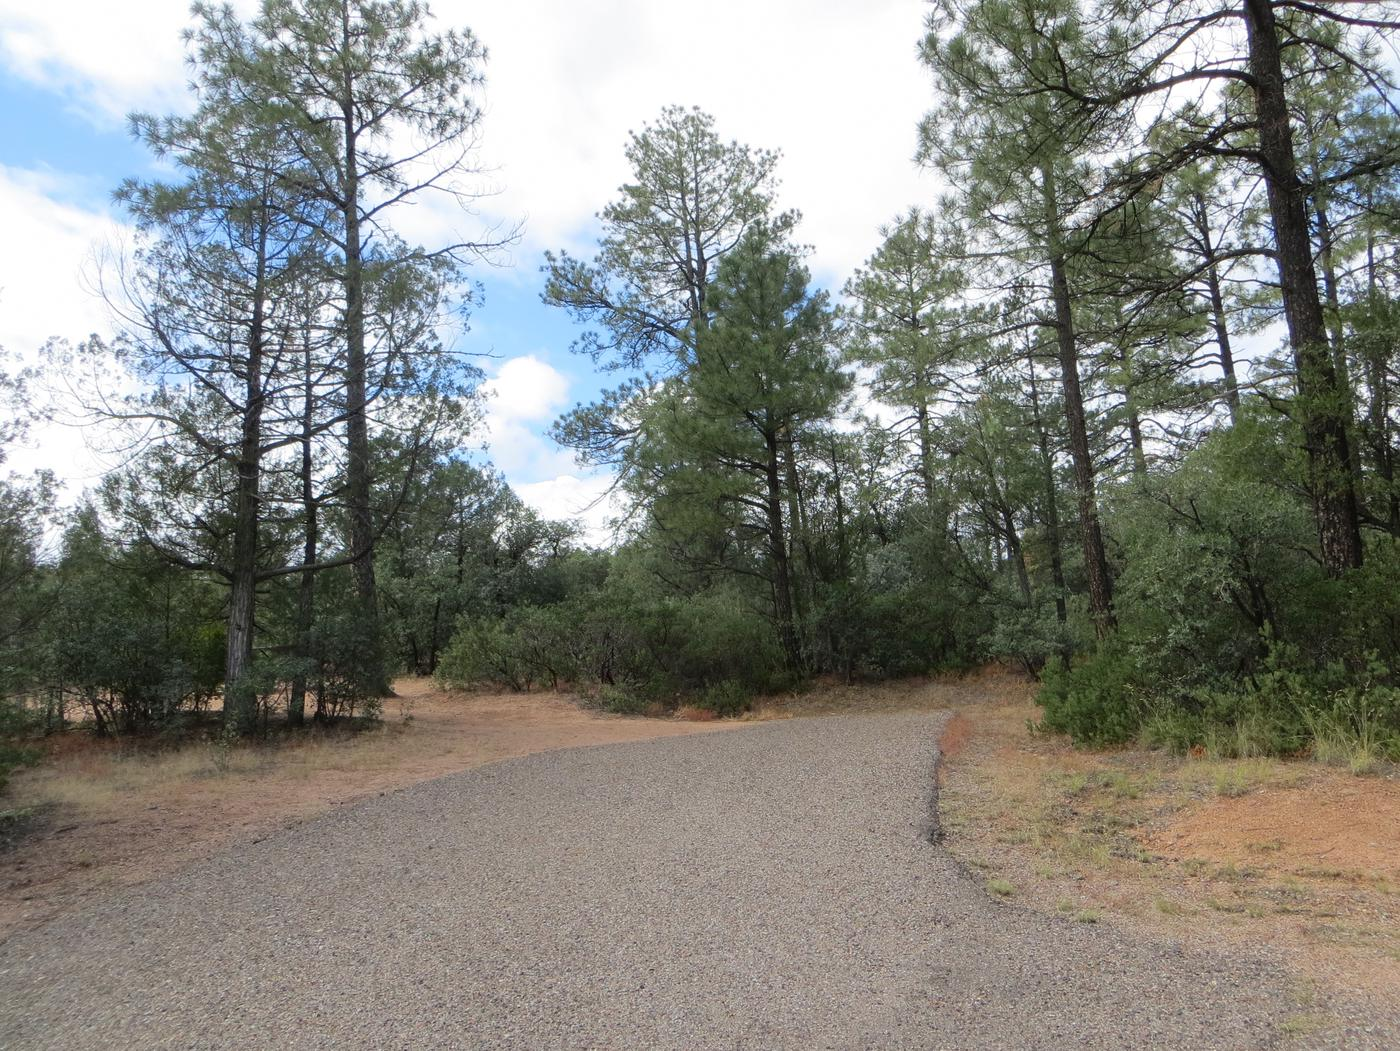 Houston Mesa, Elk Loop site #13 featuring parking and entrance to the wooded site.